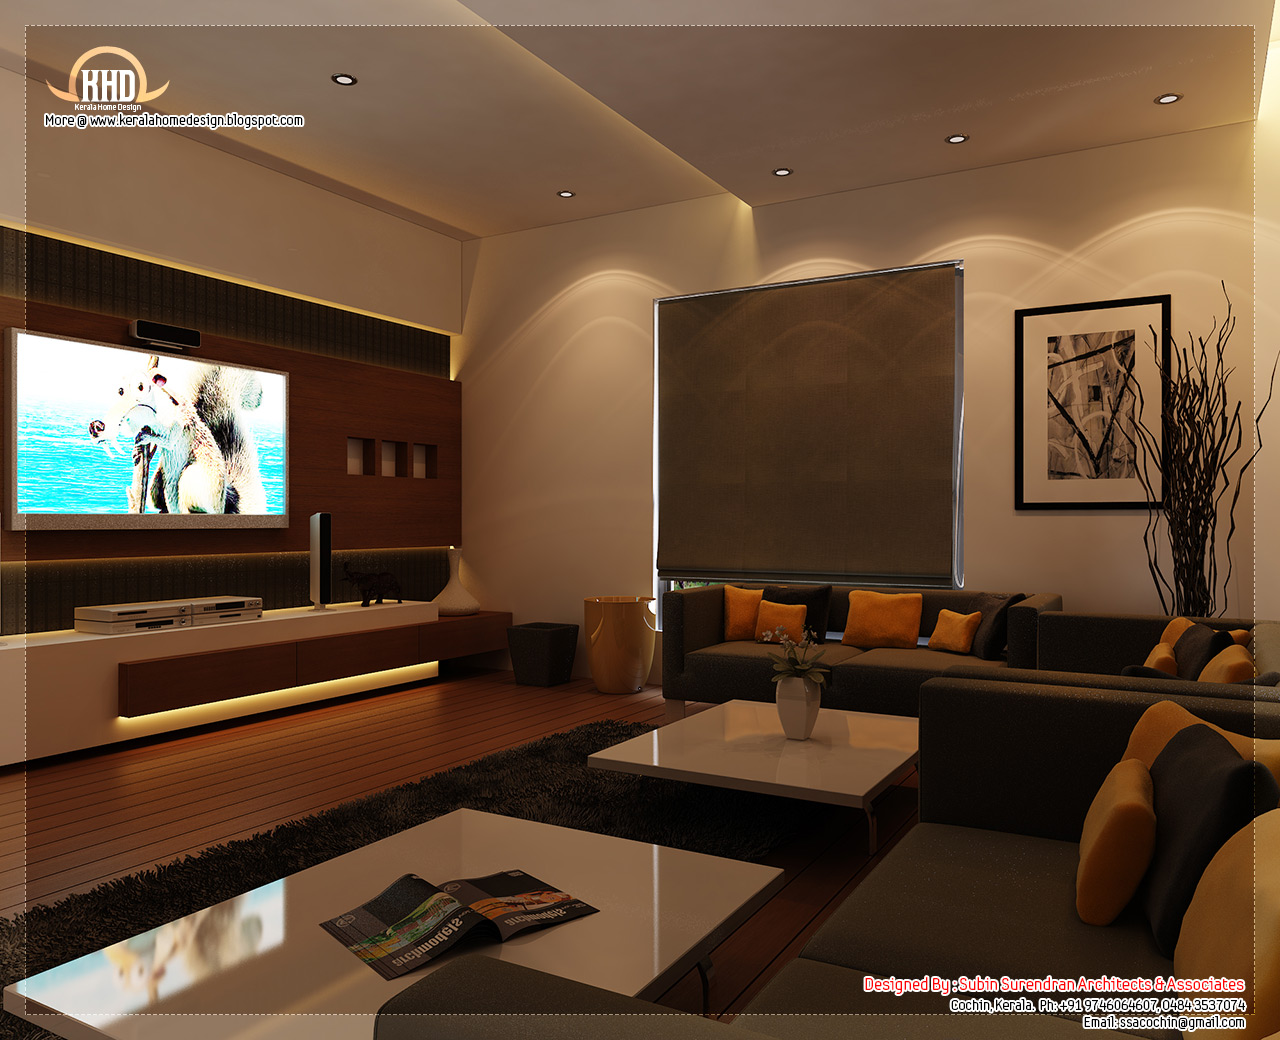 Beautiful home interior designs kerala home - Home interior design living room photos ...